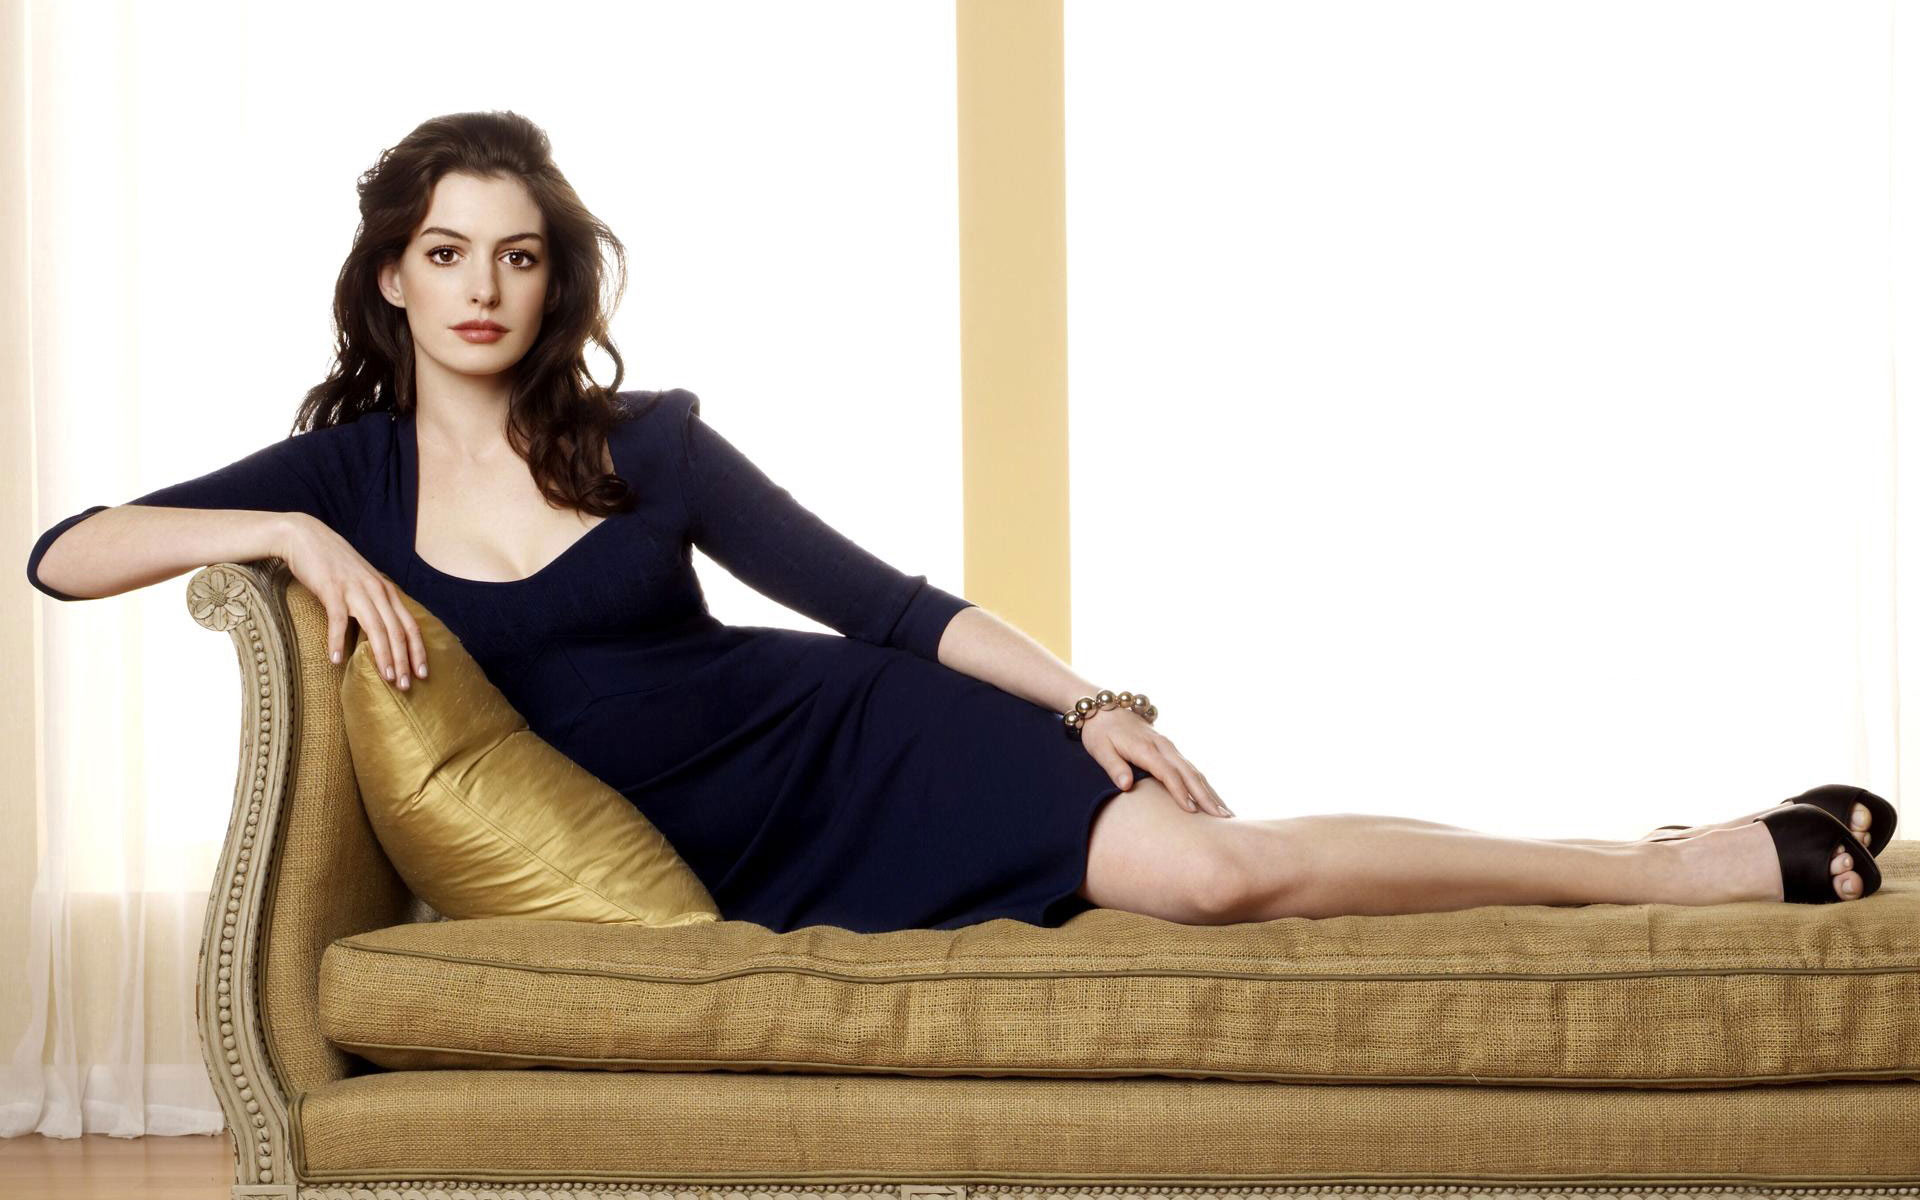 Bride Wars Actress Anne Hathaway wallpaper